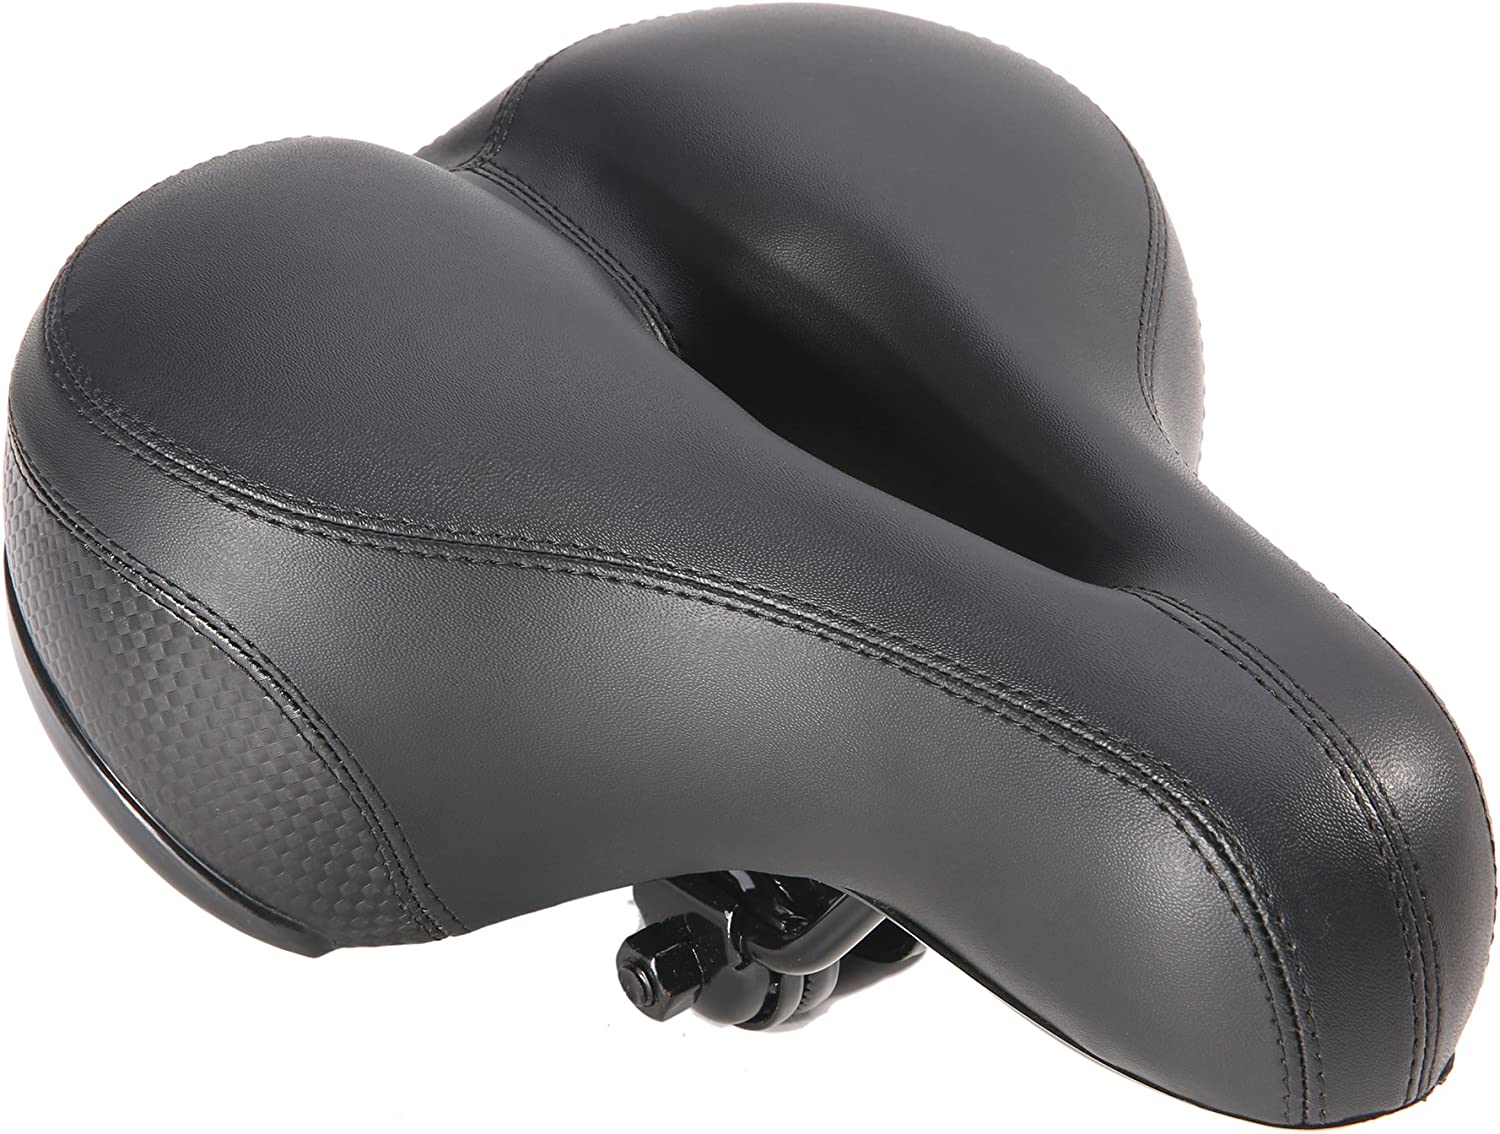 Soft Urban MTB Cruiser Road Bike Bicycle Seat Saddle Cushion Hollow saddles